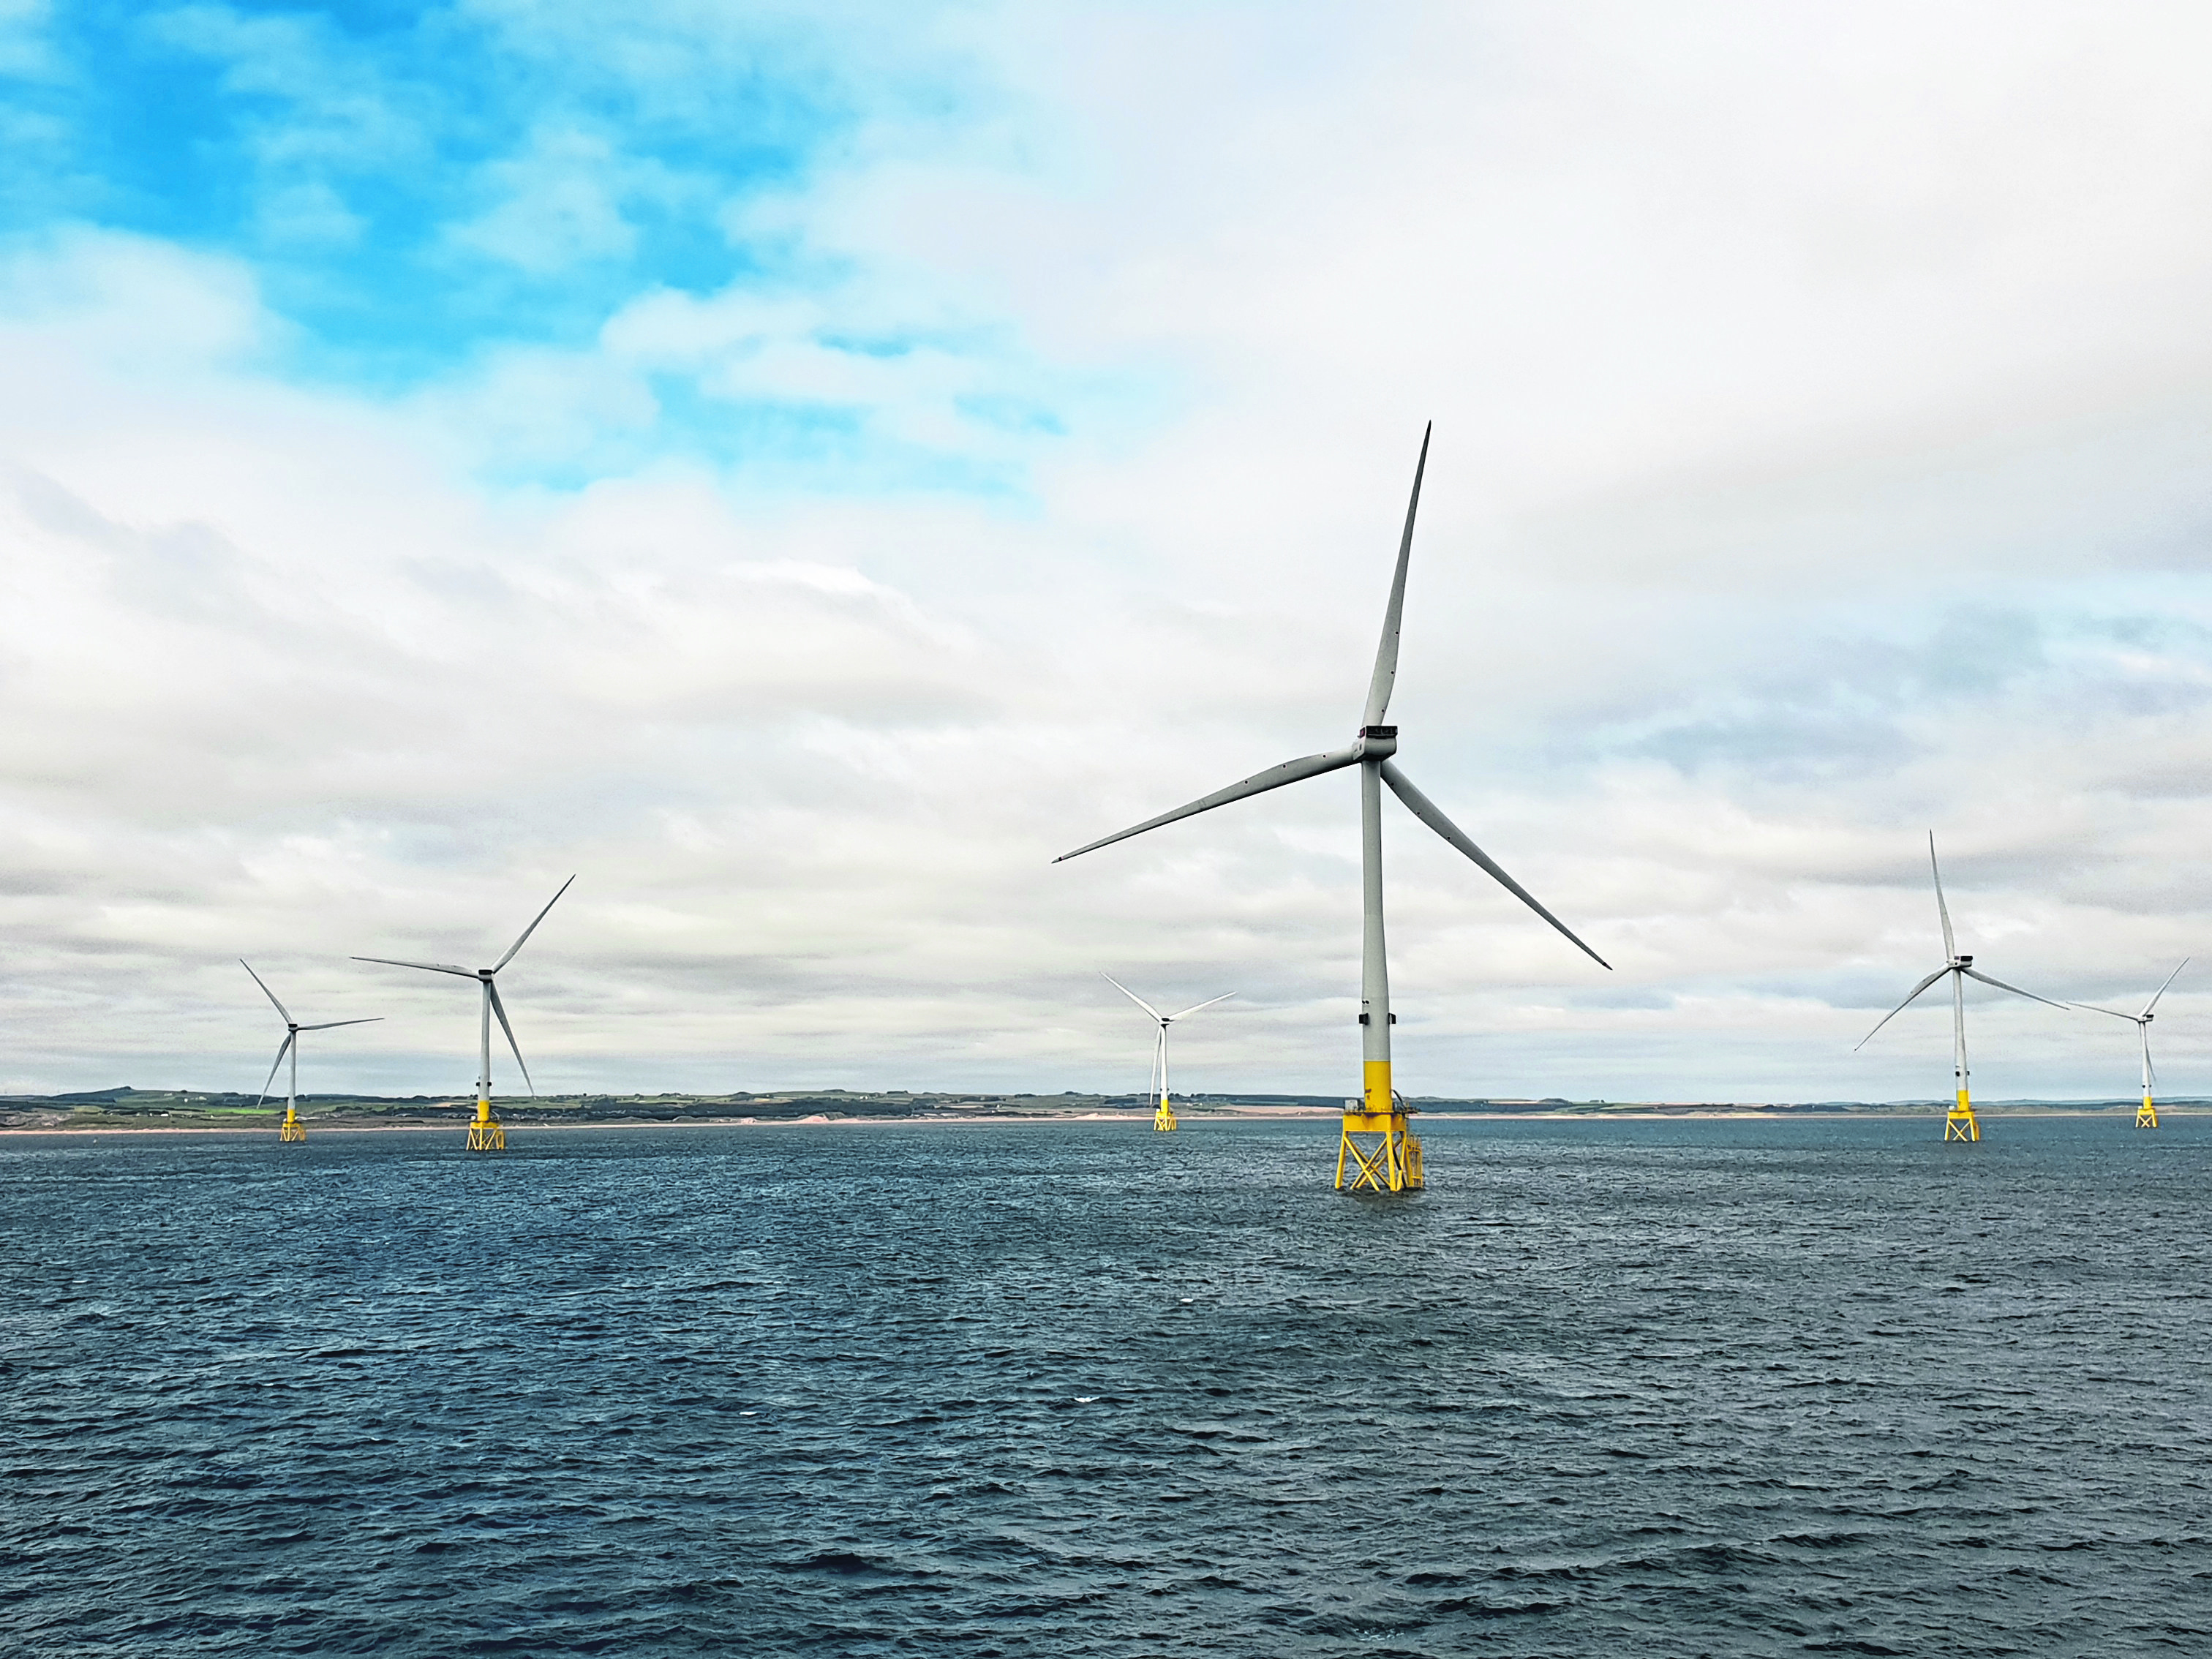 POWERING AHEAD: The EOWDC will improve efficiency and reduce costs for future offshore wind projects.